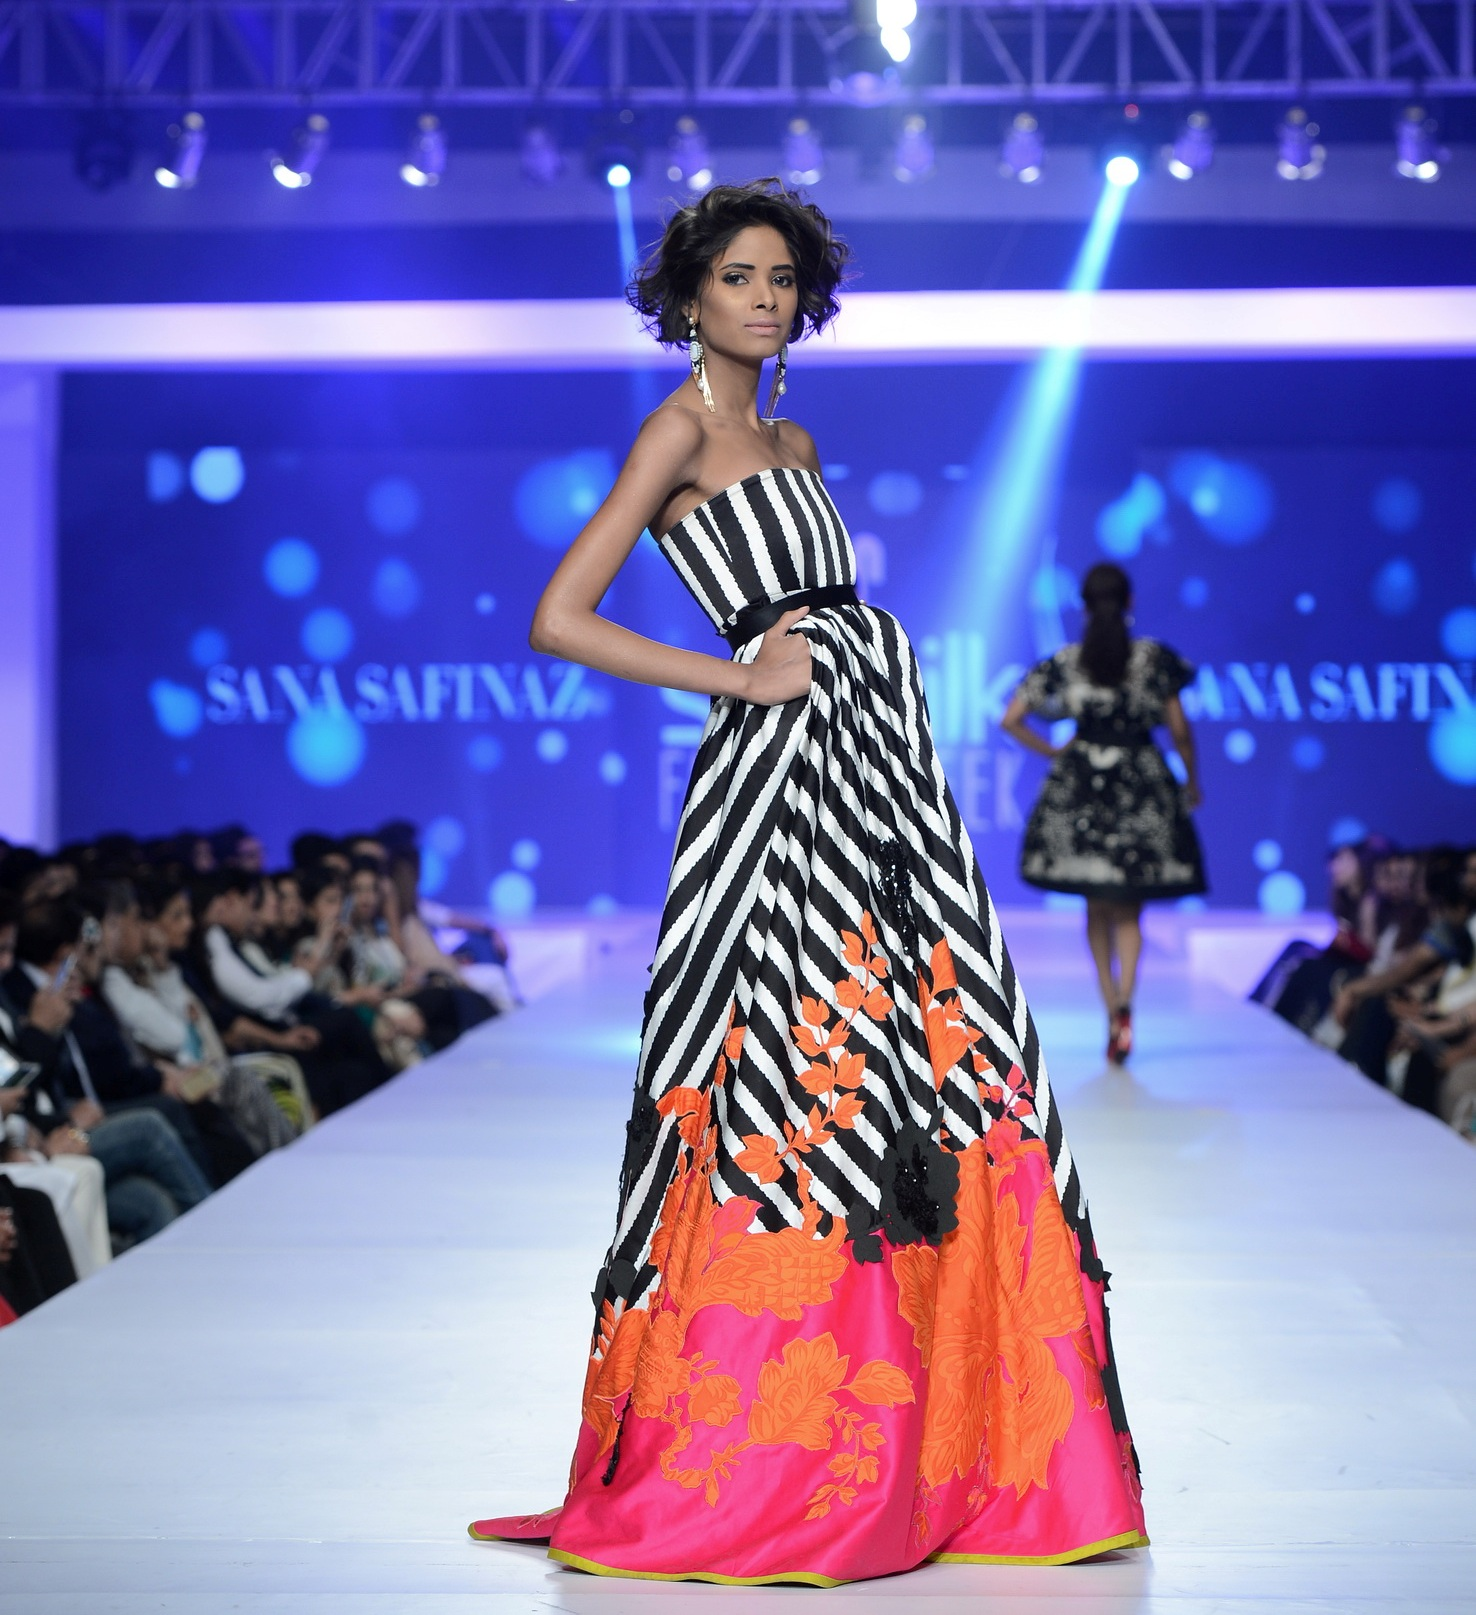 Sana Safinaz - Photography by Faisal Farooqui and his team at Dragonfly